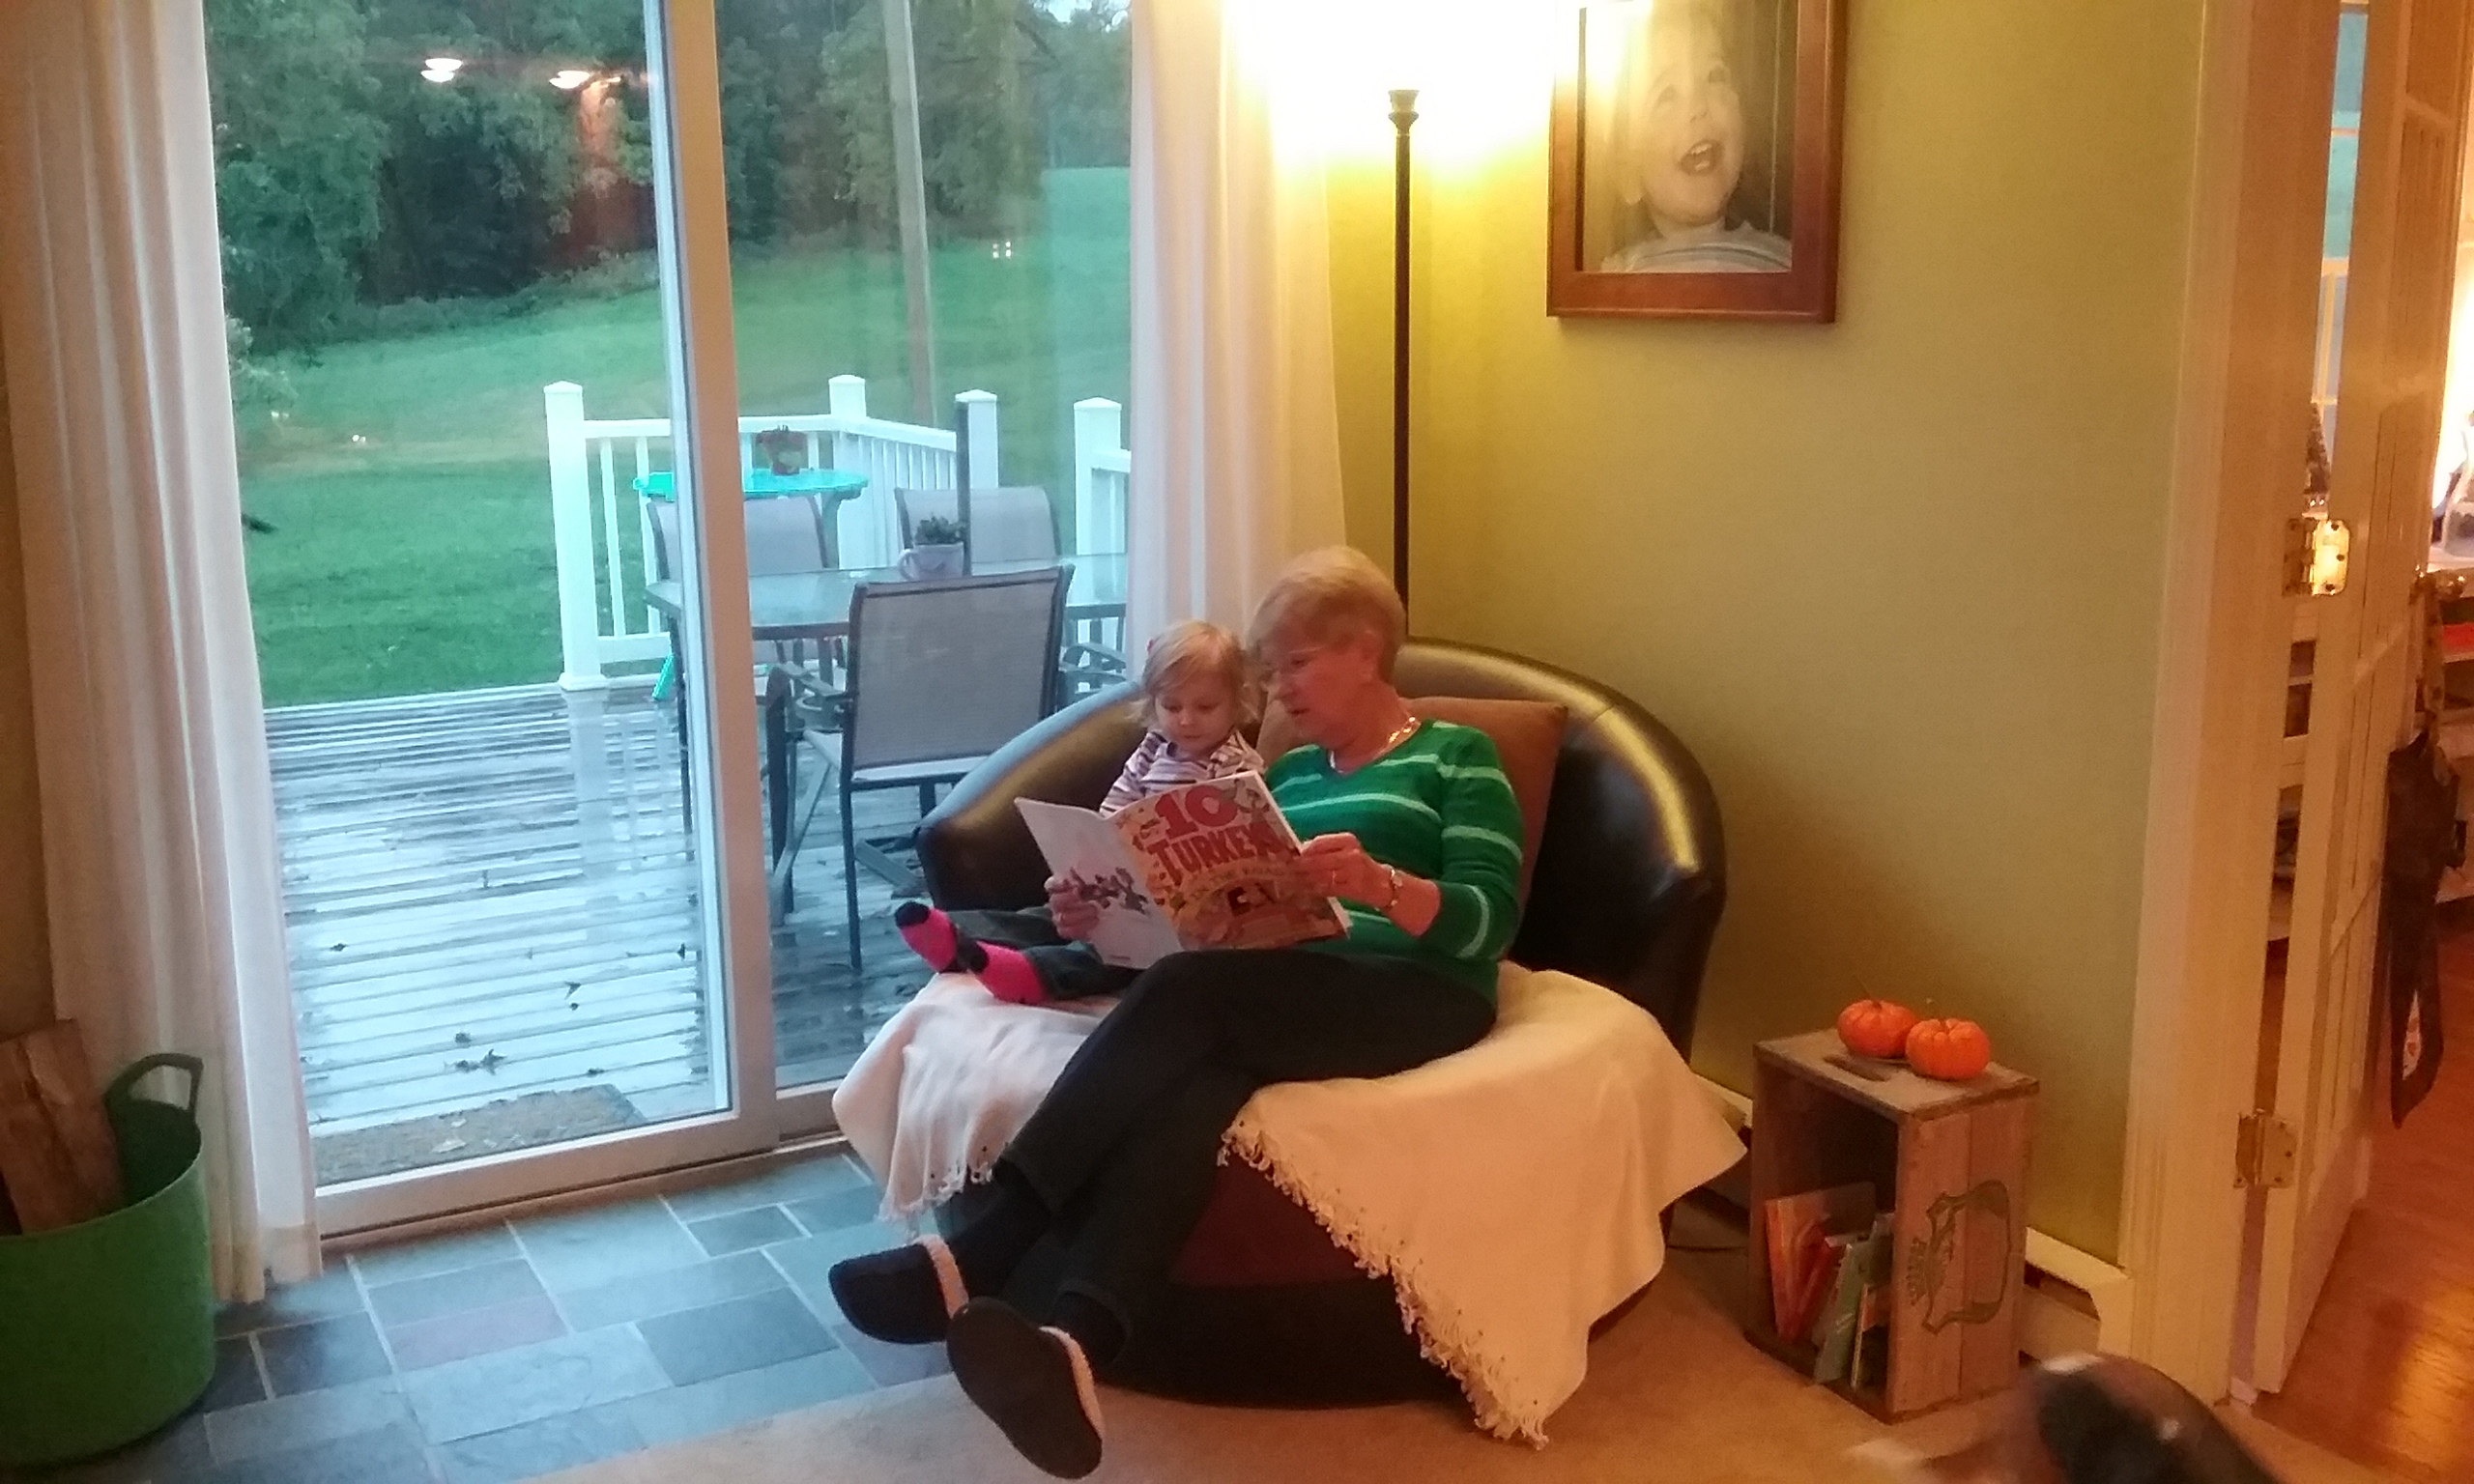 Rainy day reading with a friend